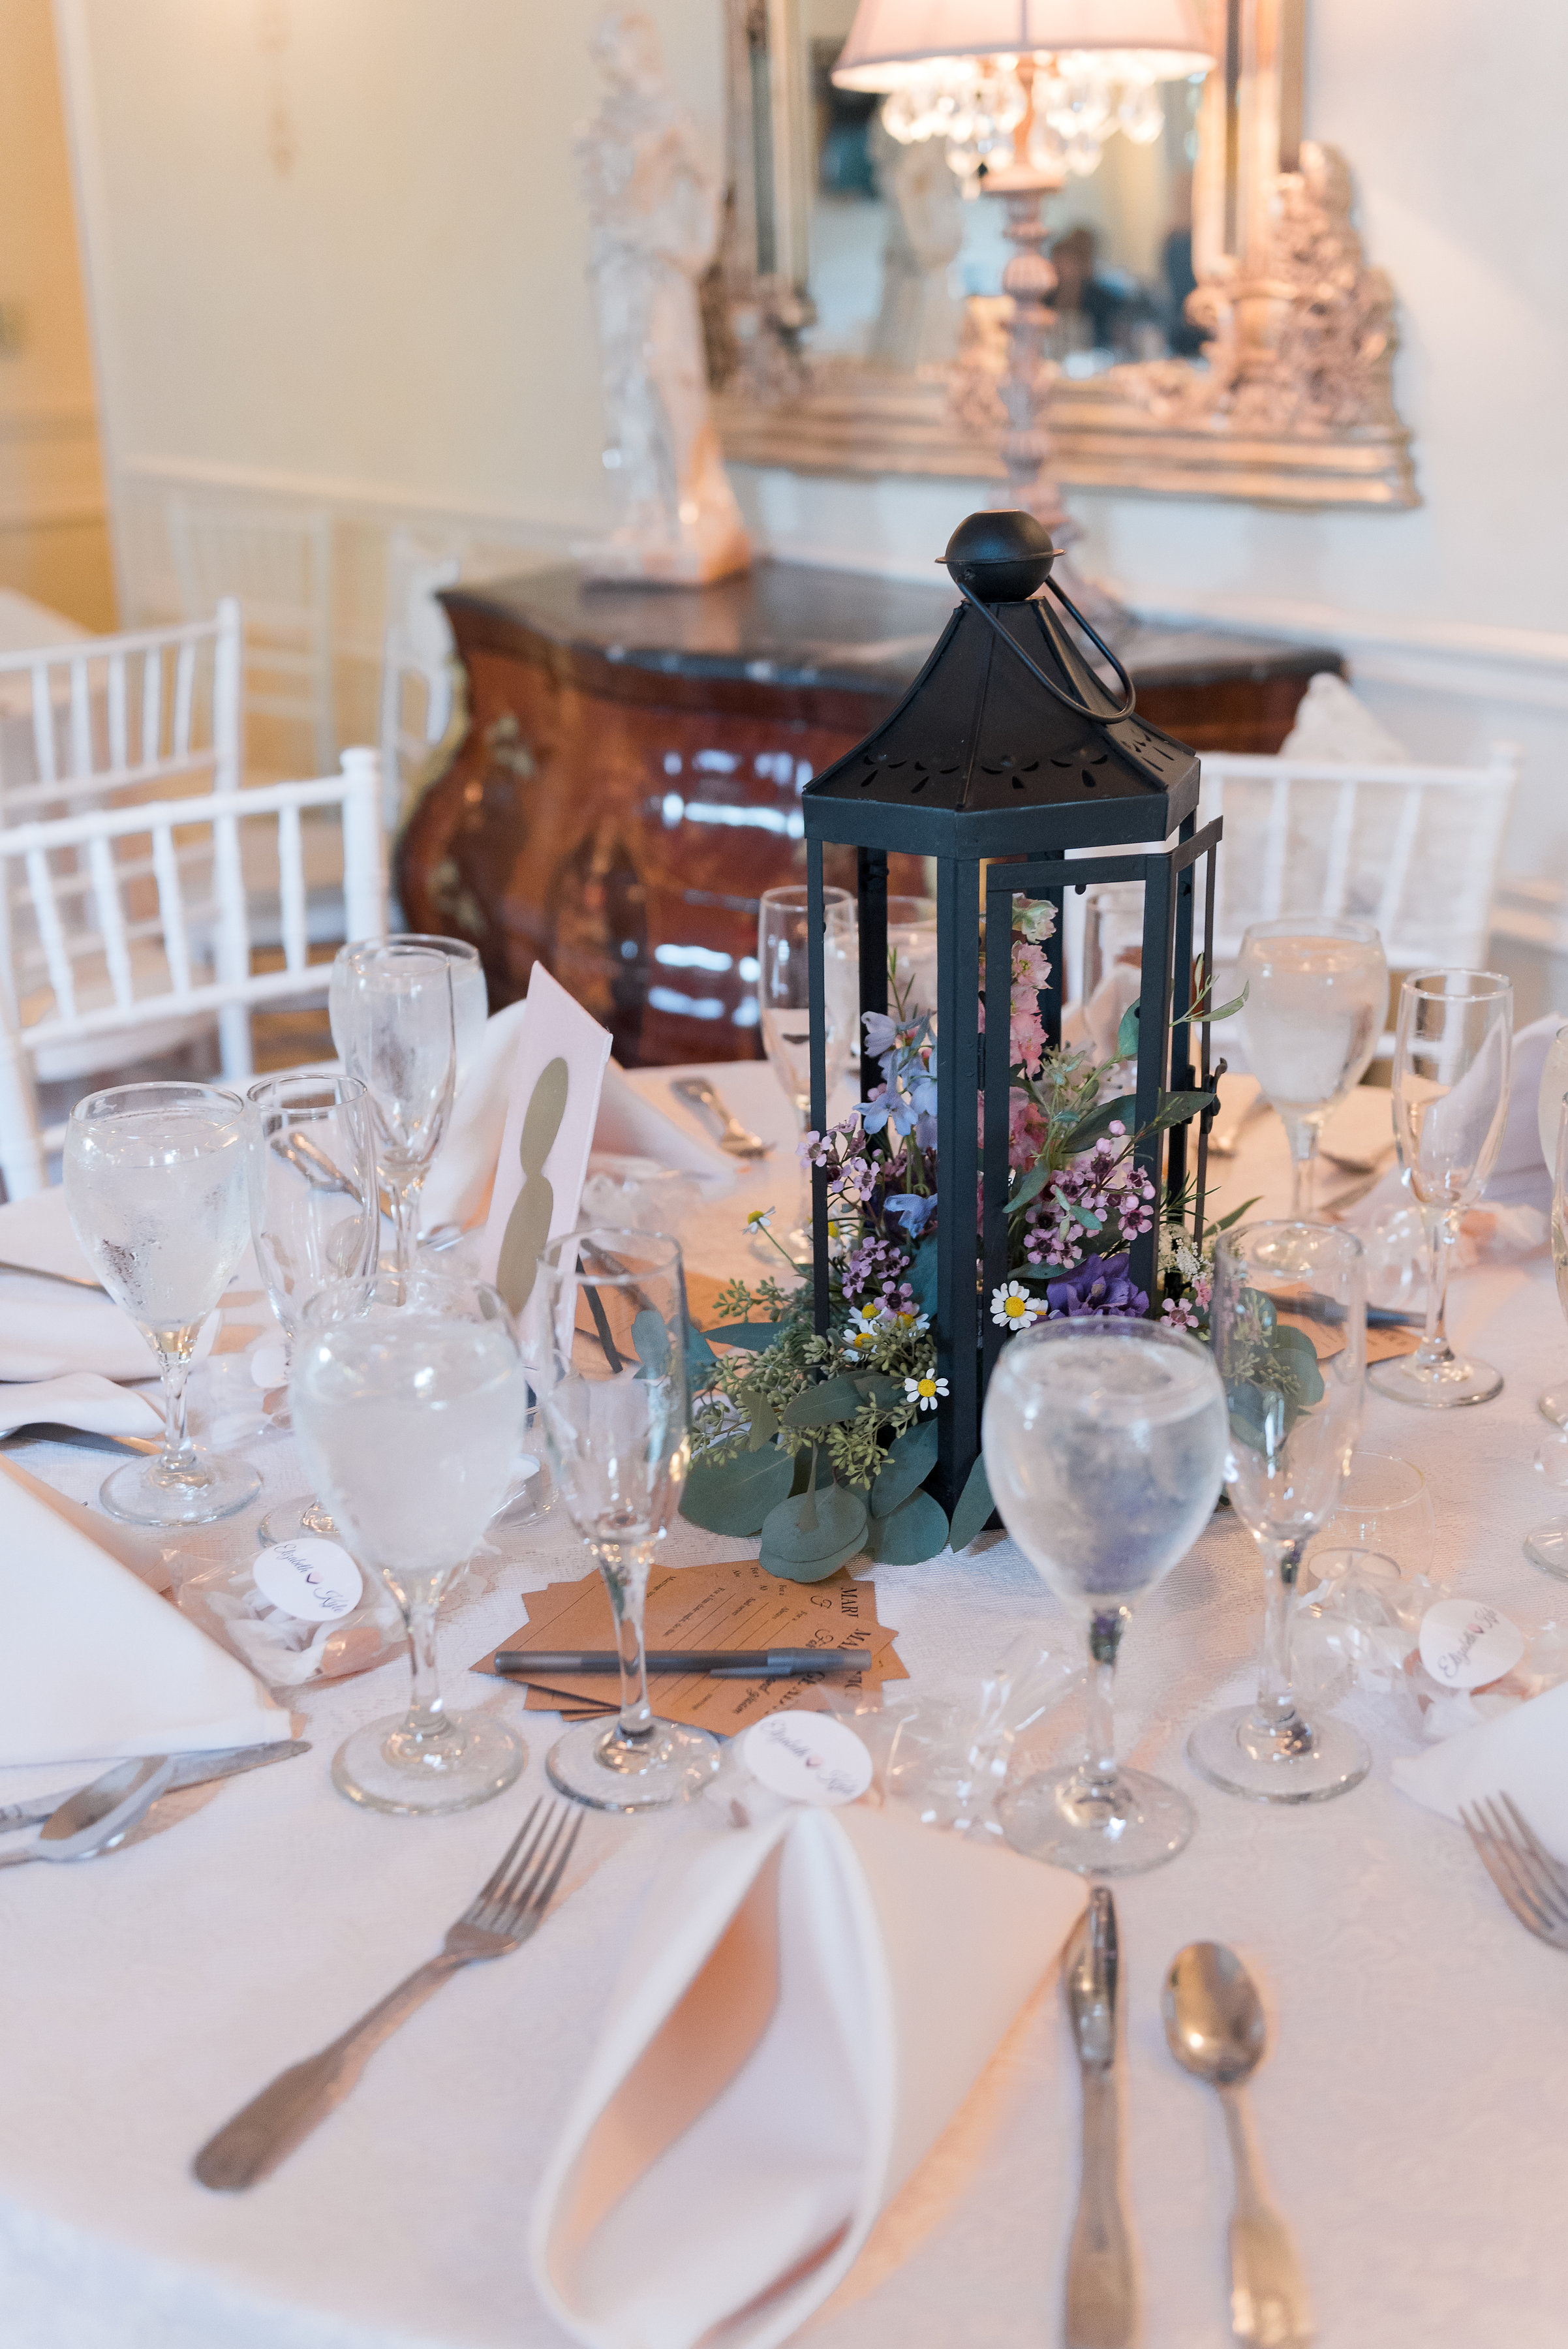 Black Lantern - This new spin to the lantern is all about the gushing florals spilling on to the table for a garden feel wedding.